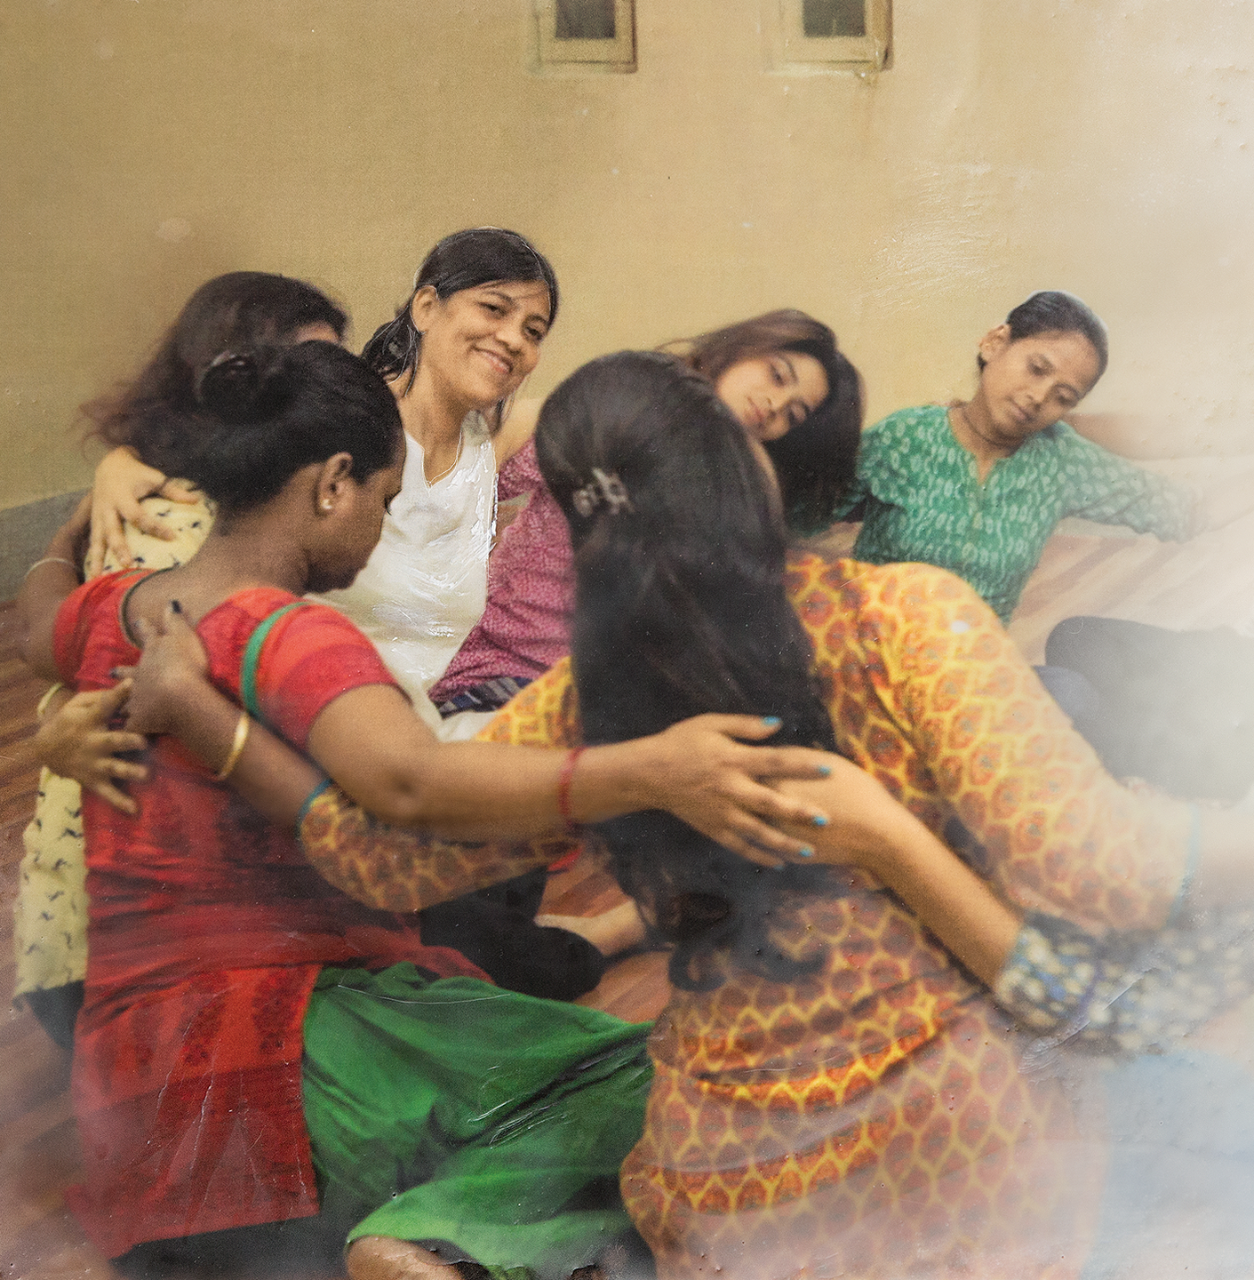 Sohini Chakraborty helping a group of survivors using dance/movement therapy.